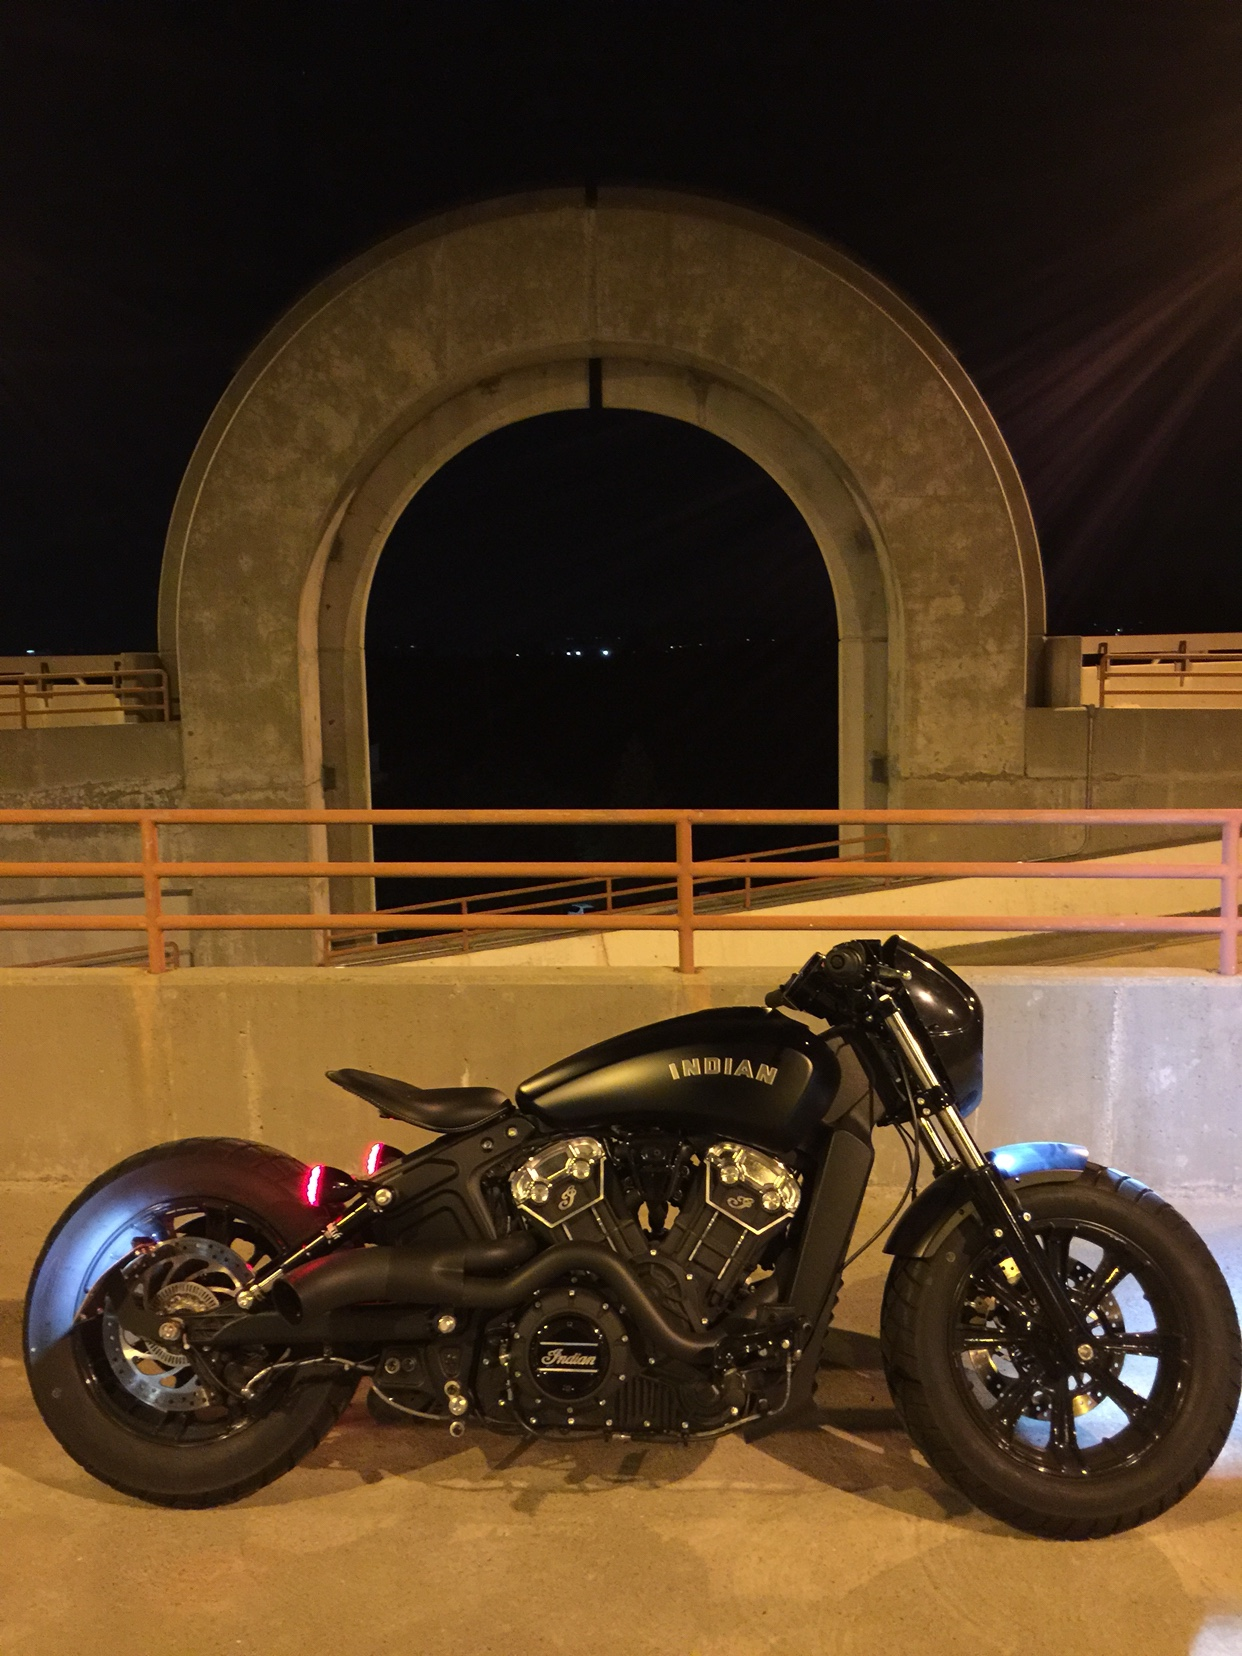 2018 Indian Scout Bobber Cafe Bobber Dragster Indian